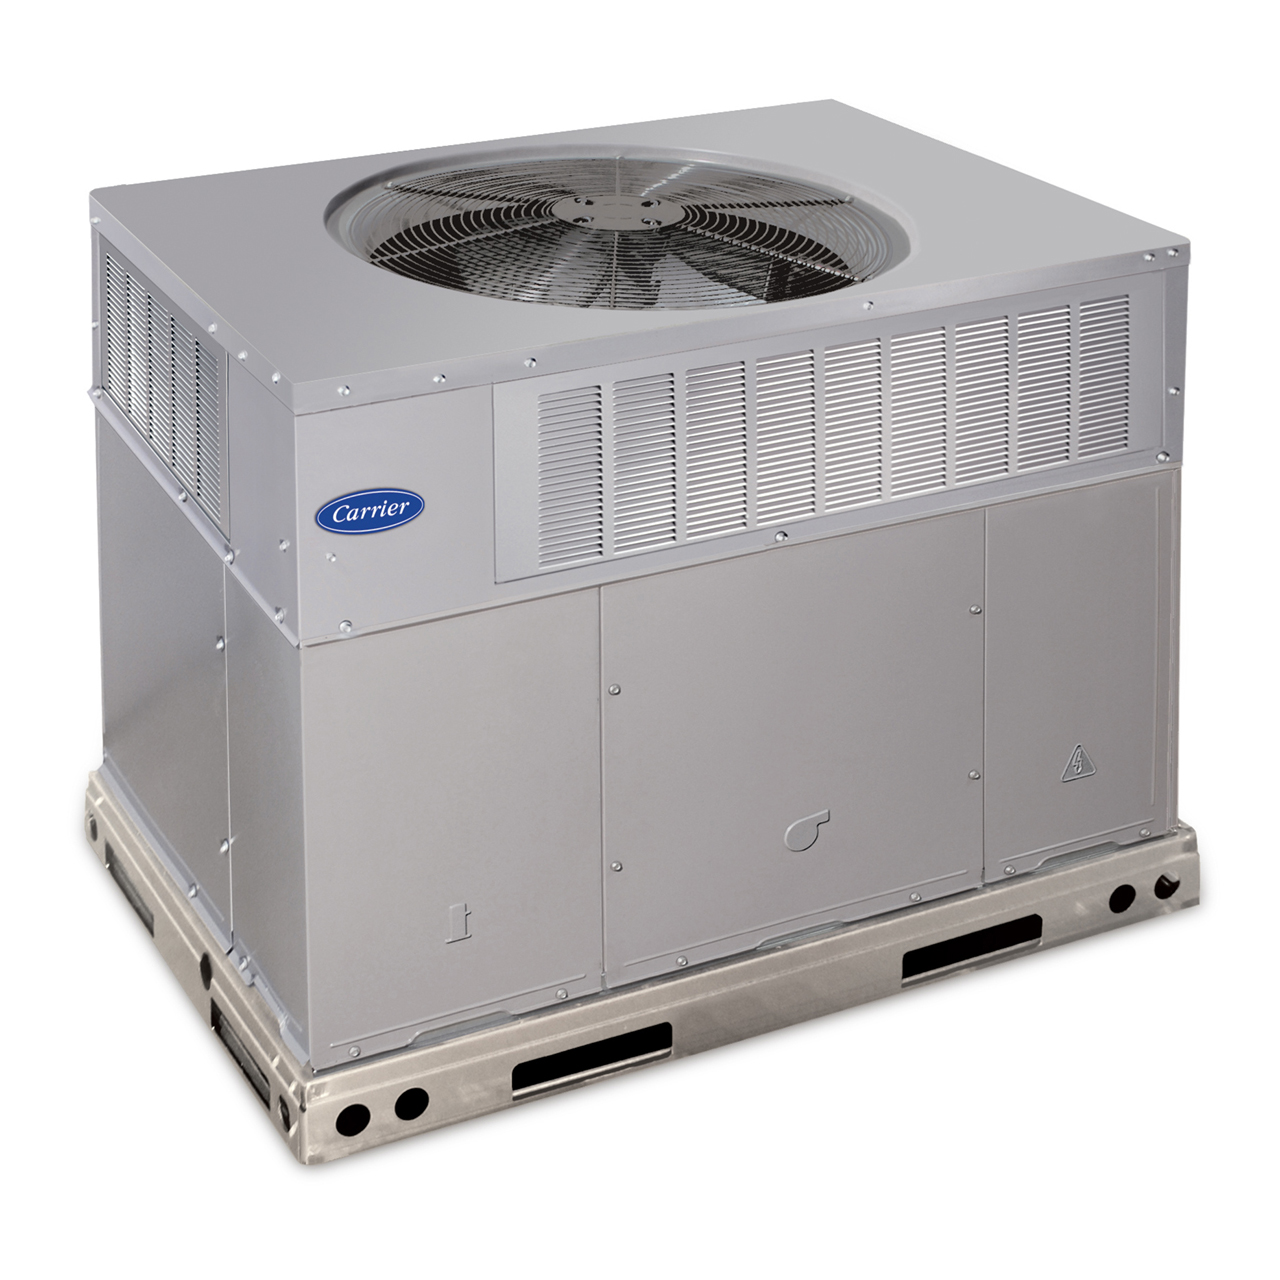 carrier-50vg-a-packaged-air-conditioner-system